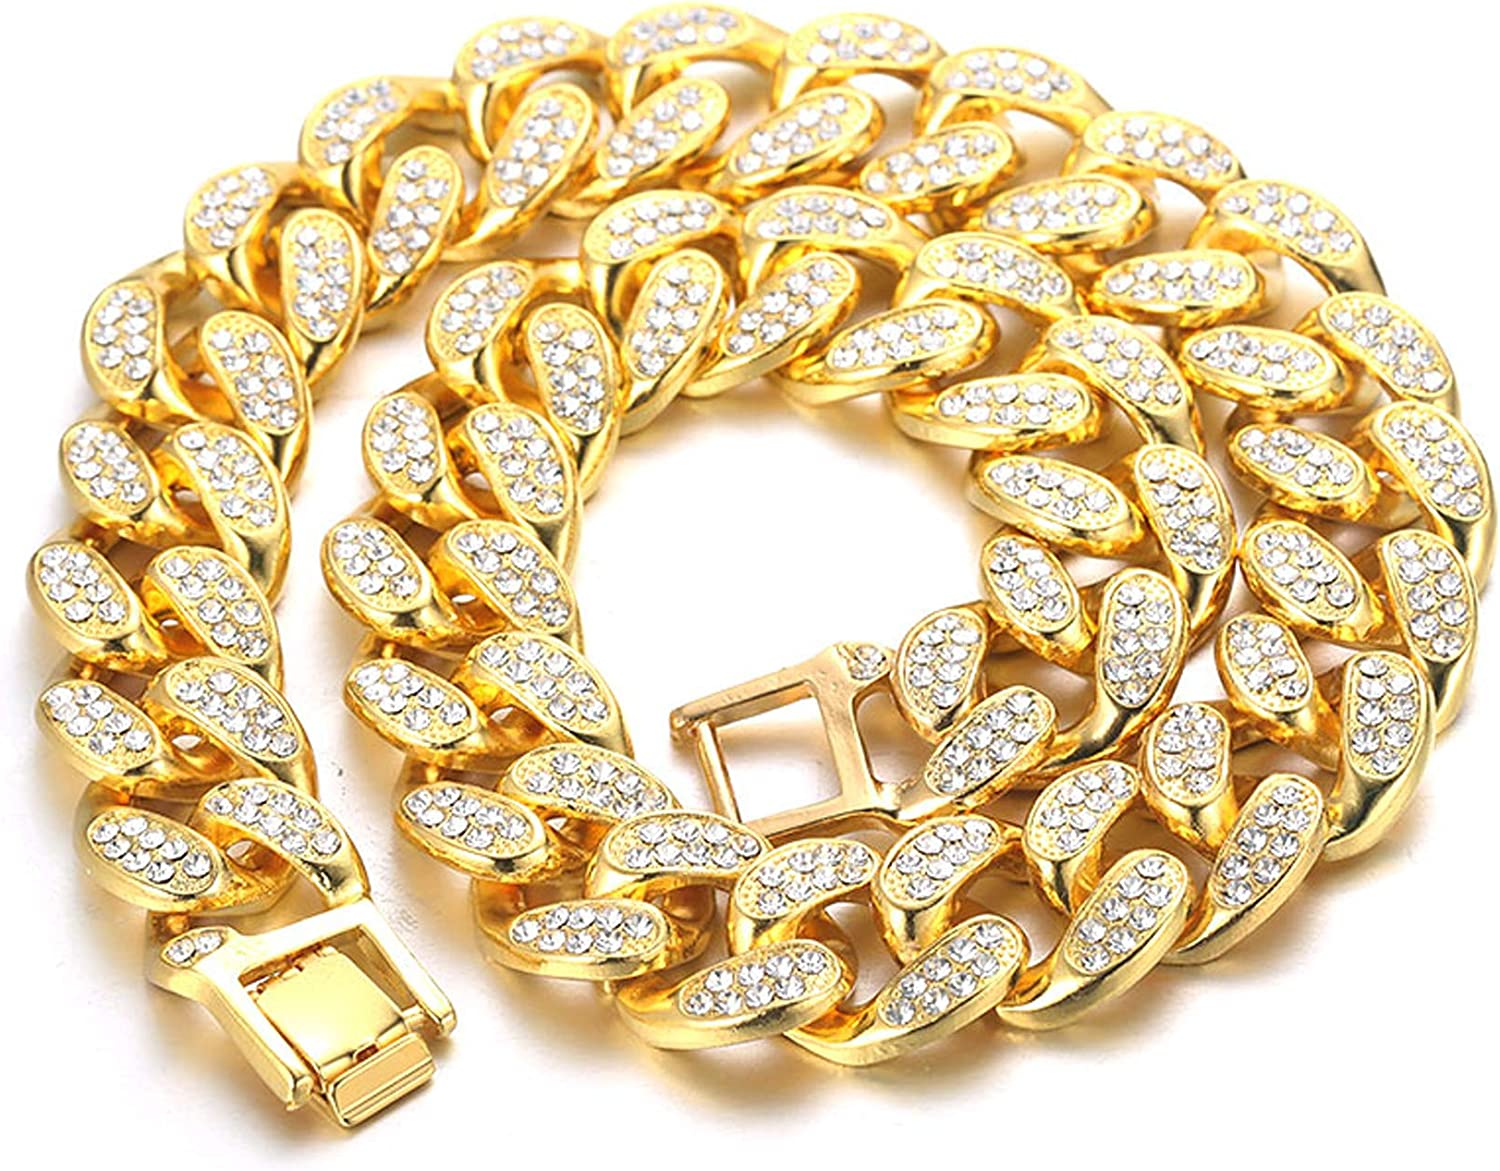 Halukakah Cuban Link Chain for Men Iced Out,15MM//20MM Mens Gold Chain Miami 18k Real Gold Plated//Platinum White Gold Finish Choker Necklace Bracelet,Full Cz Diamond Cut Prong Set,Gift for Him